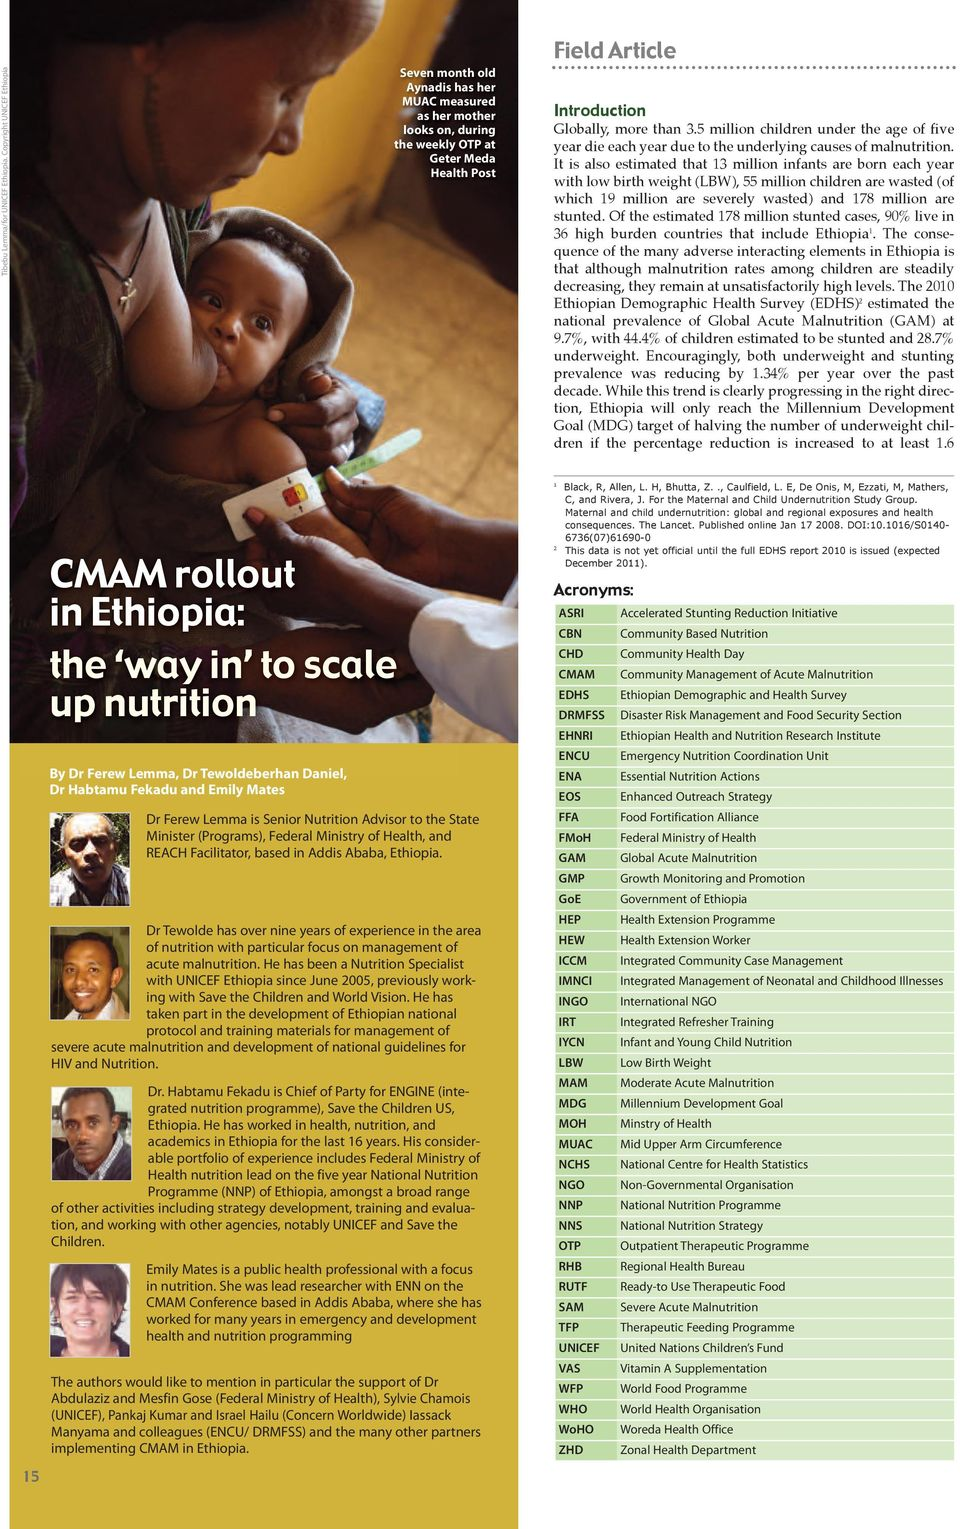 5 million children under the age of five year die each year due to the underlying causes of malnutrition.